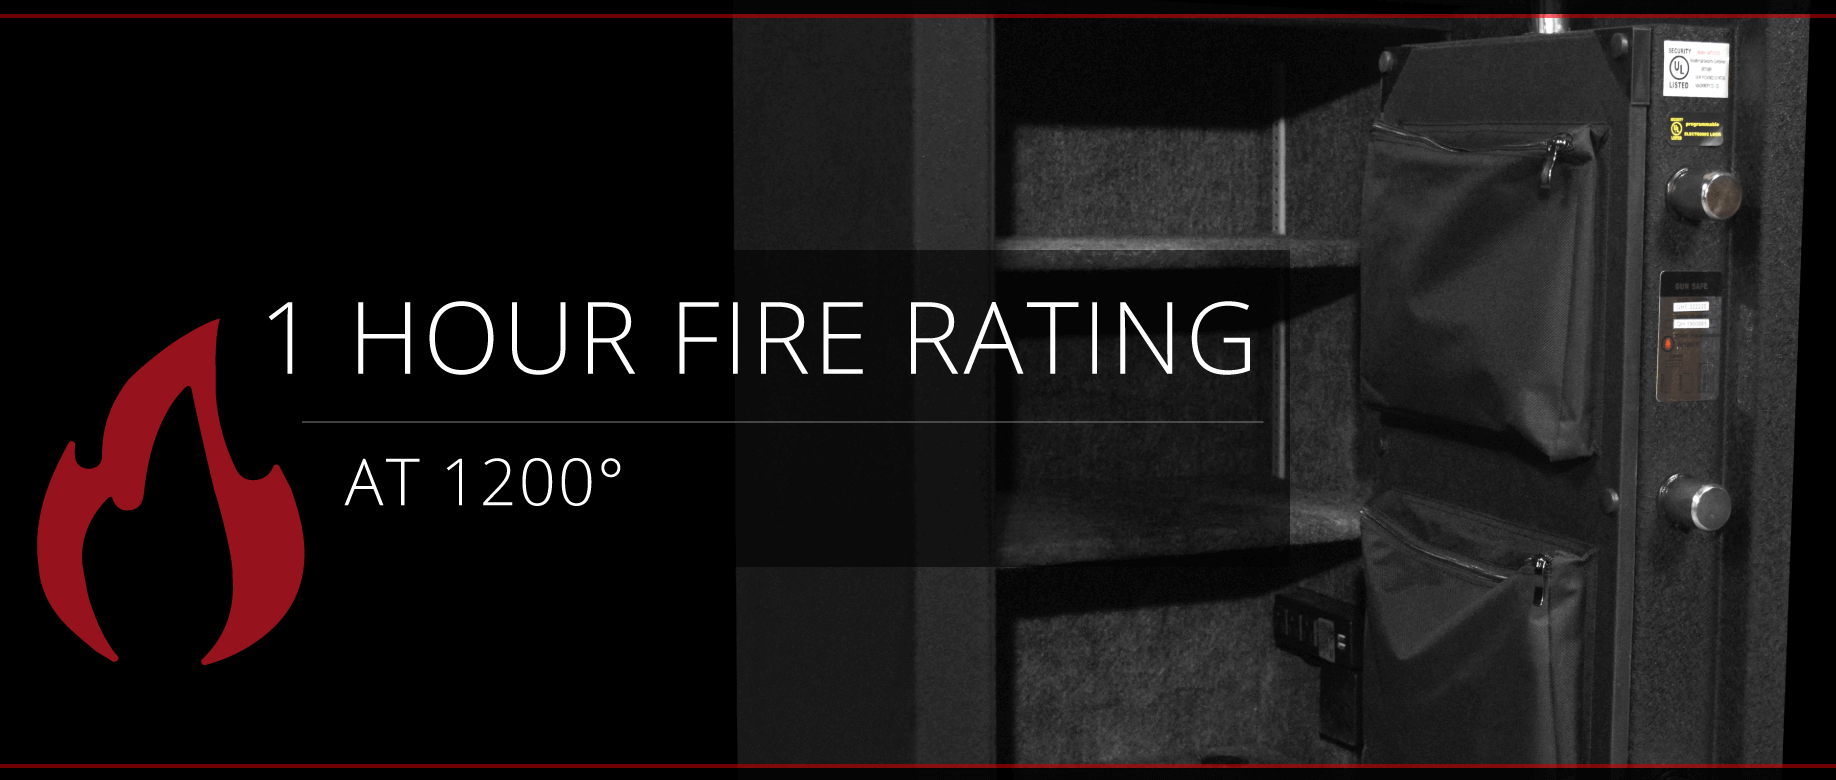 Stealth HS8 UL Home Safe 1 Hour Fire Rating